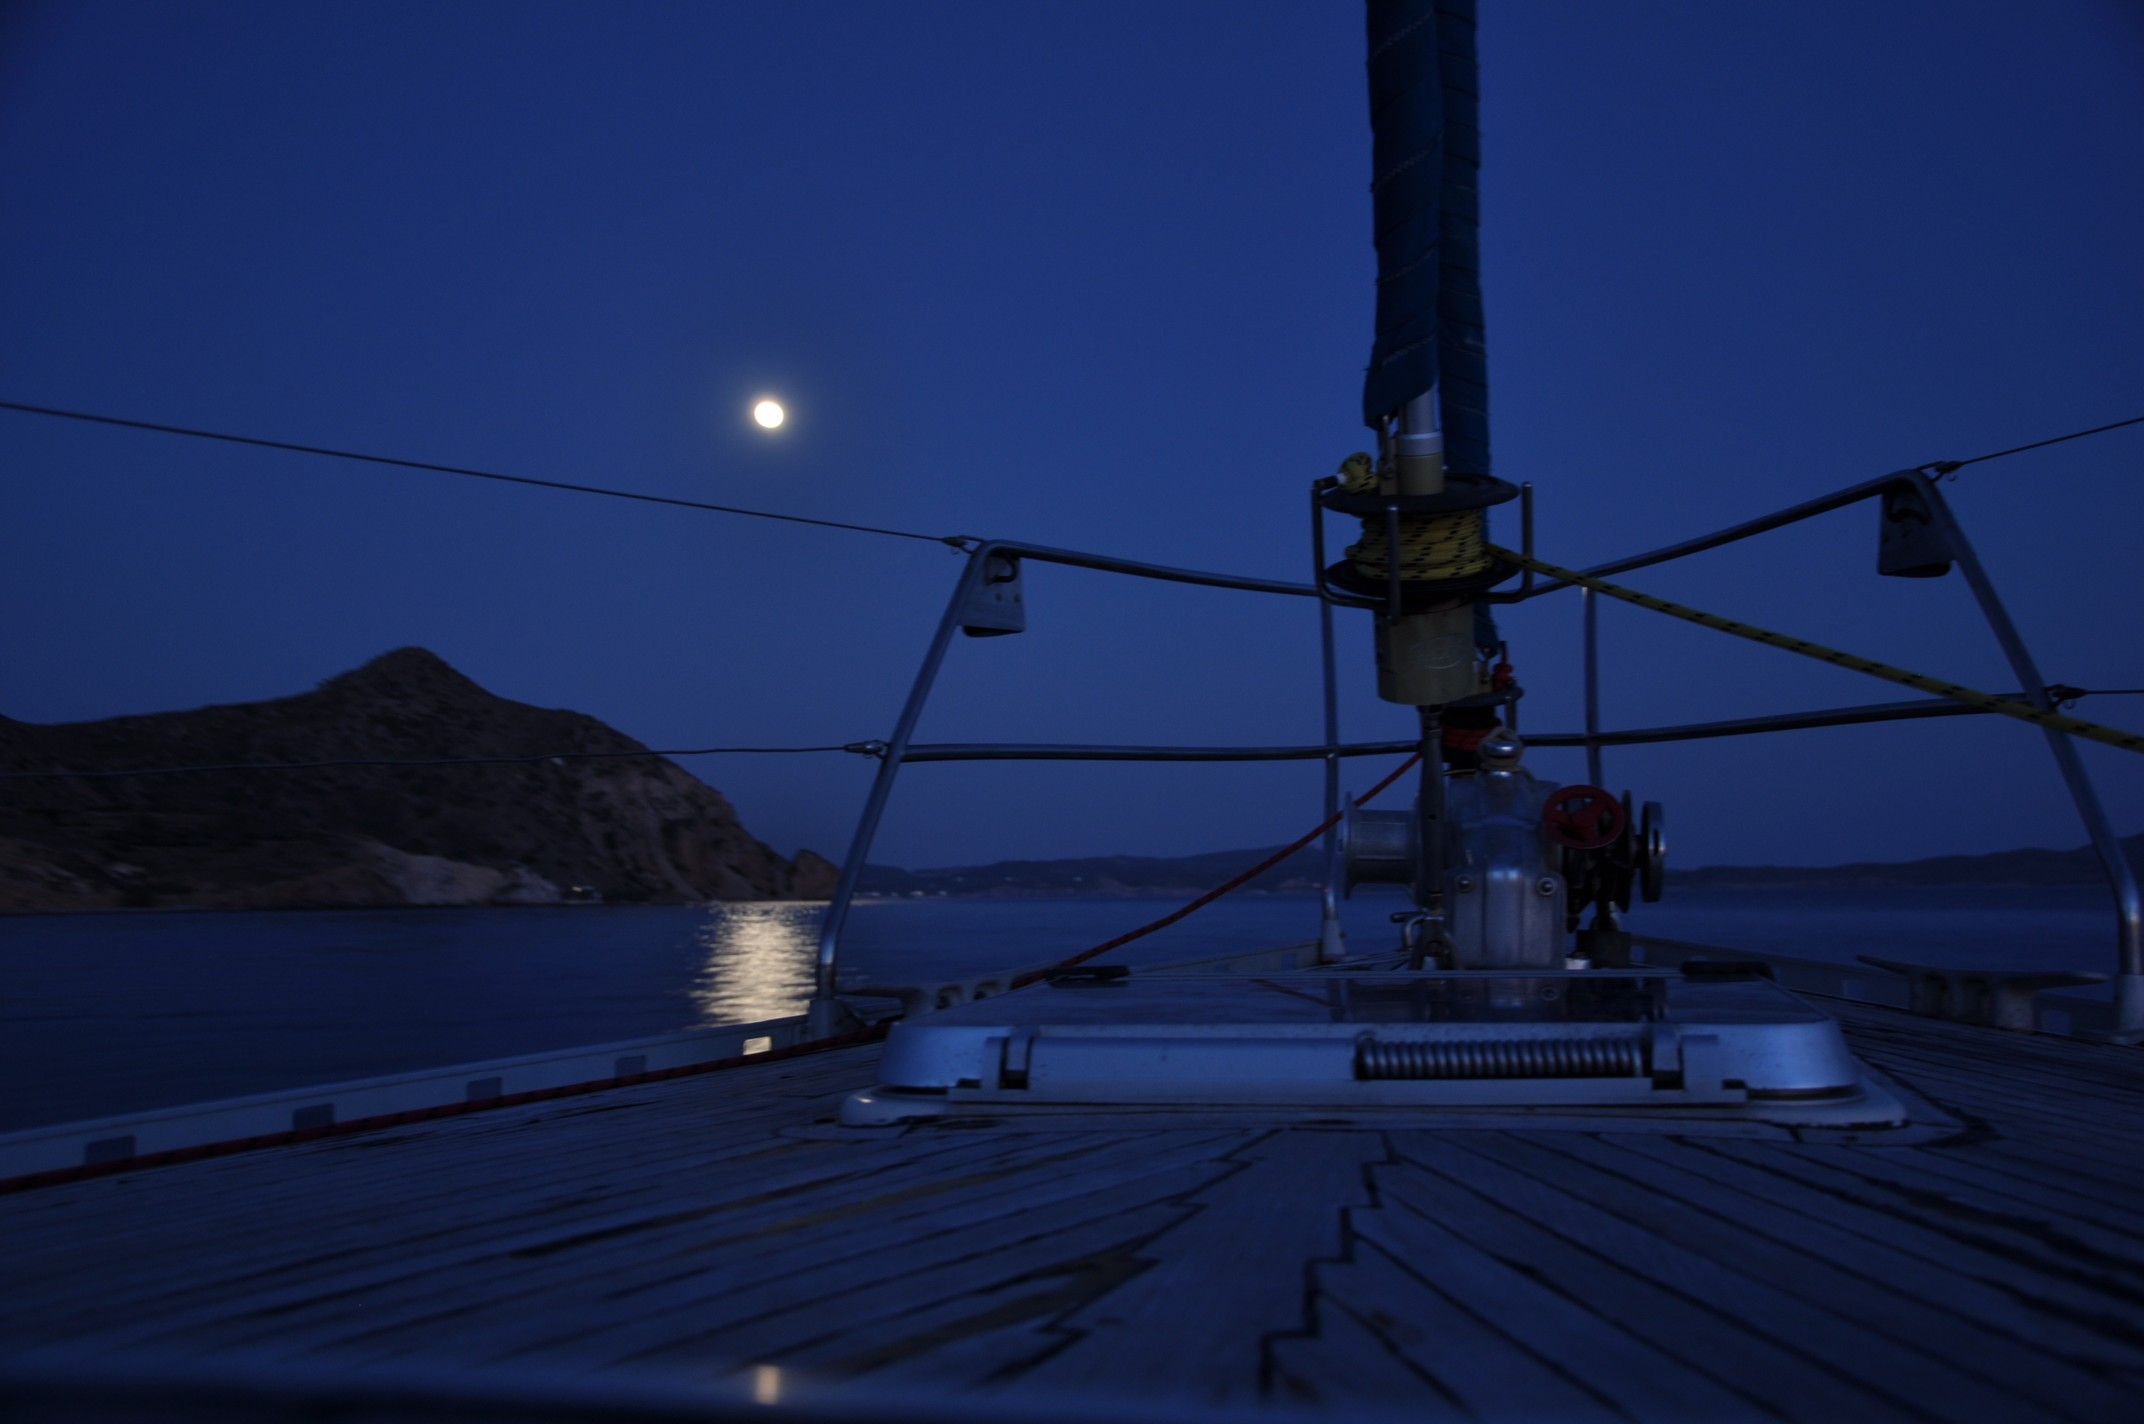 Romantic dinner on board a yacht under the nightsky and moon (per request evey day